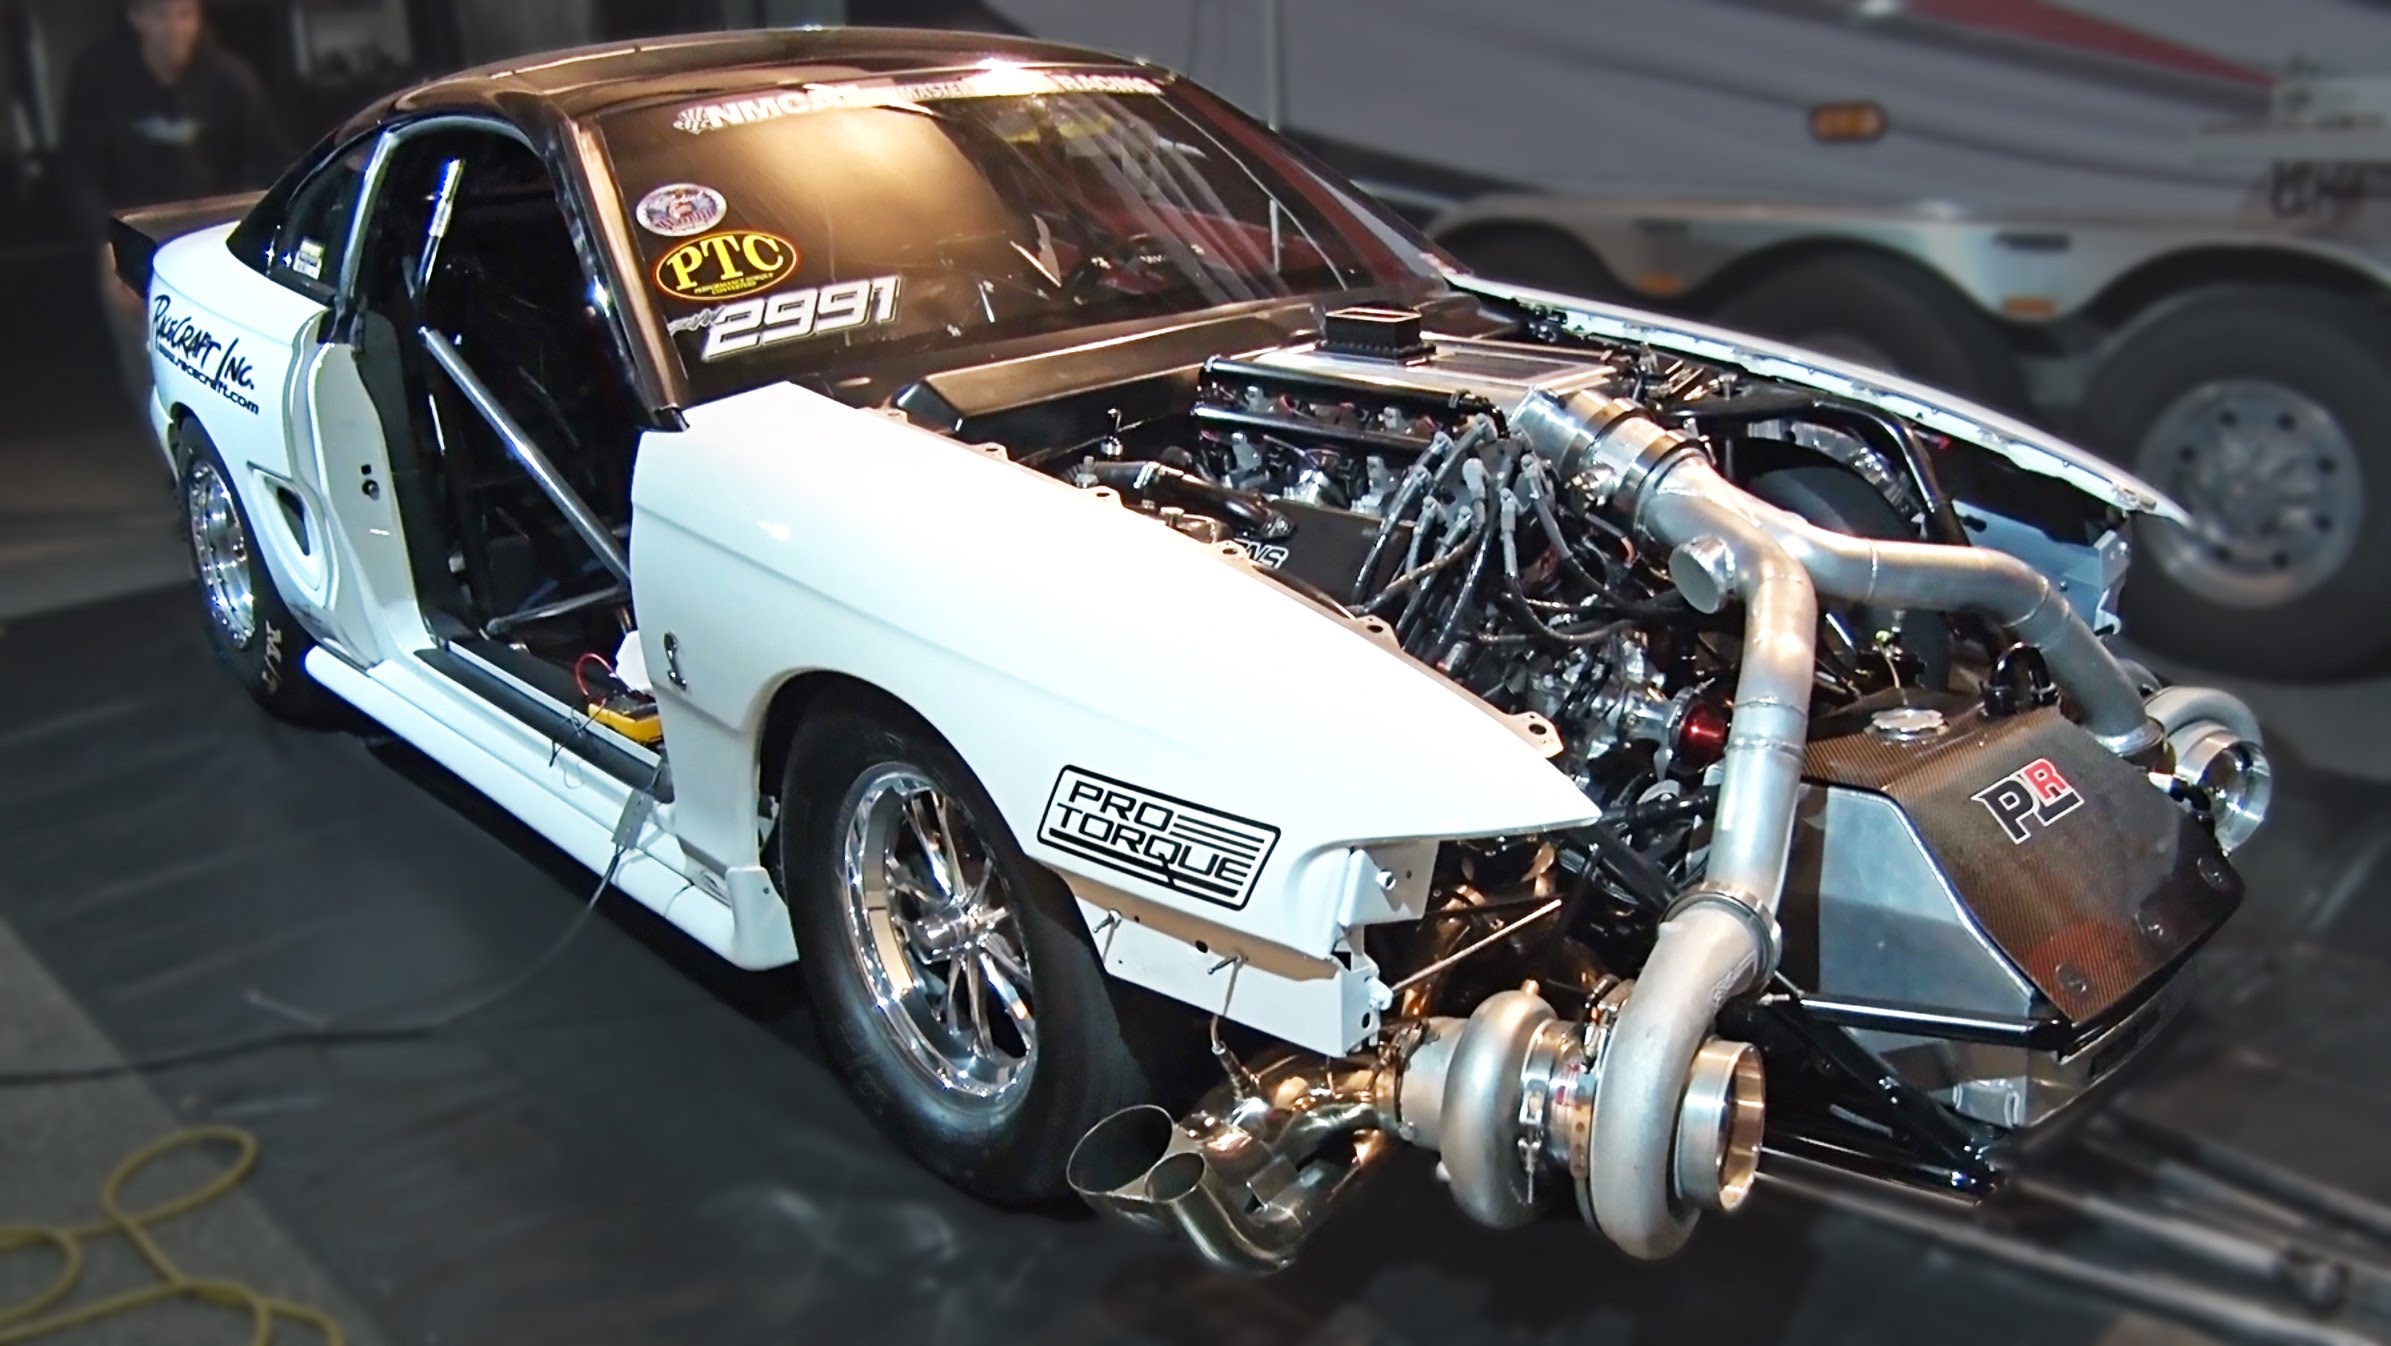 Tt Mustang Runs 209 Mph In Eighth Mile Dragtimes Com